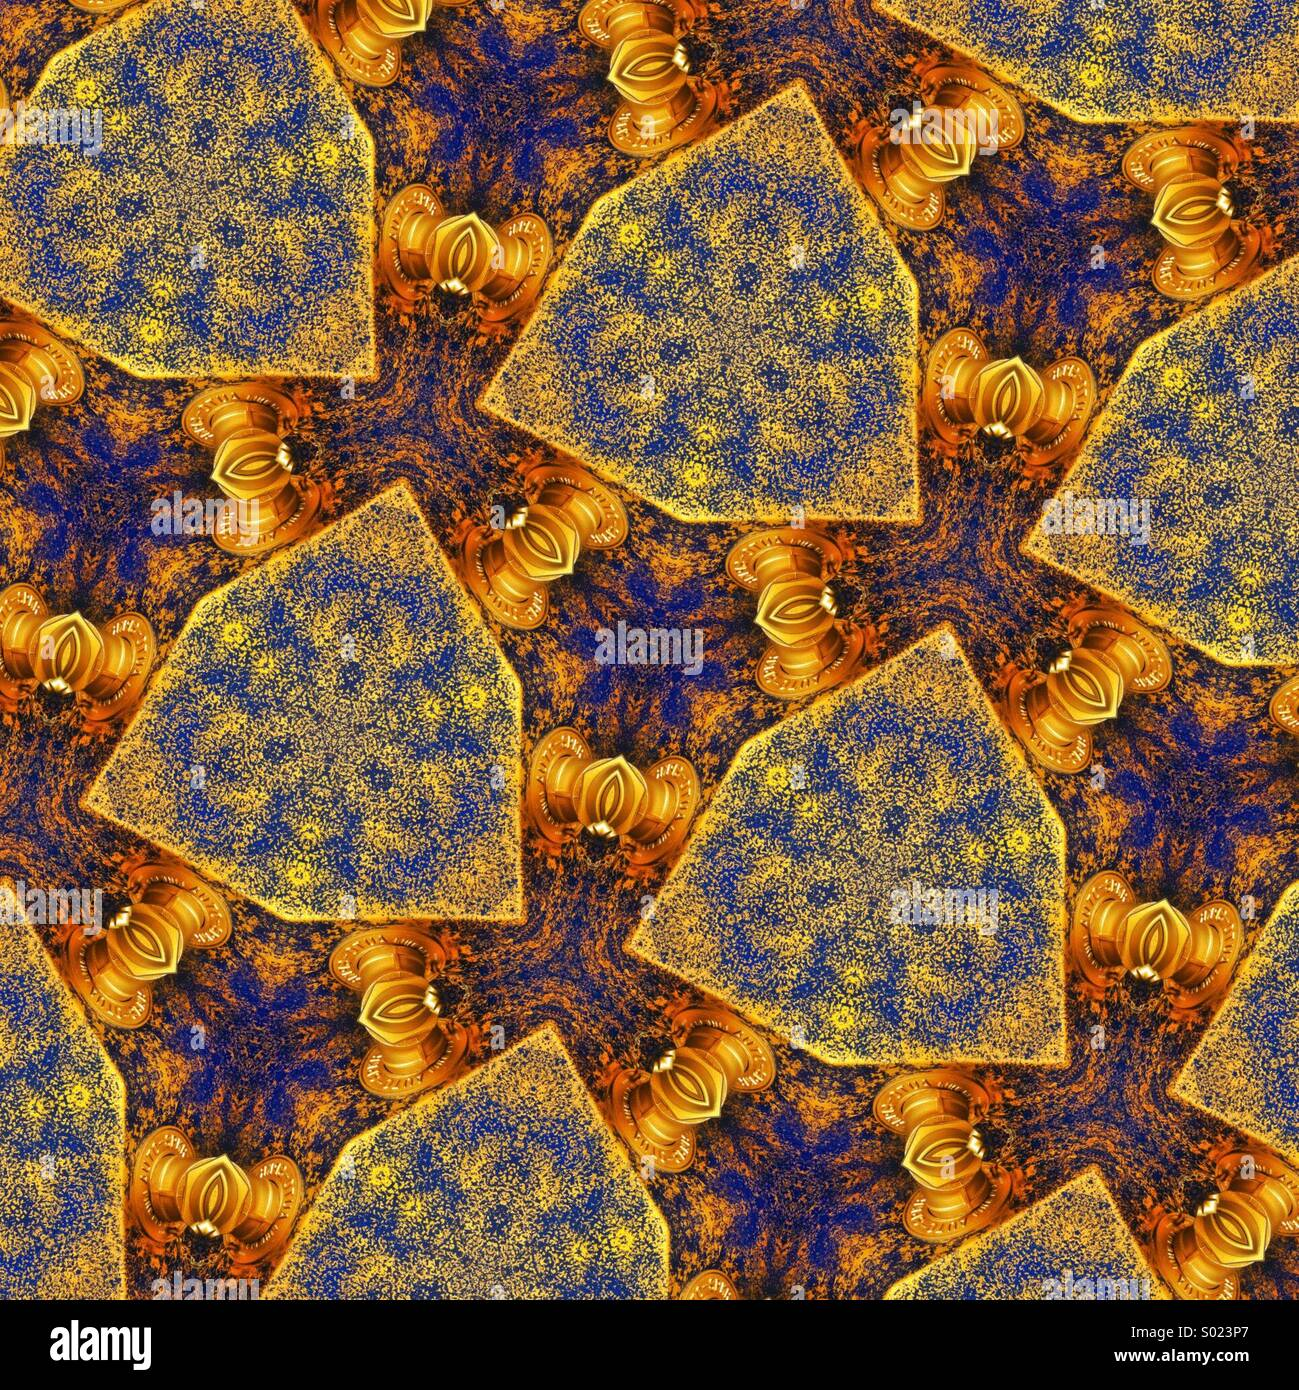 An eye pleasing kaleidoscopic pattern in brilliant gold and blue - Stock Image